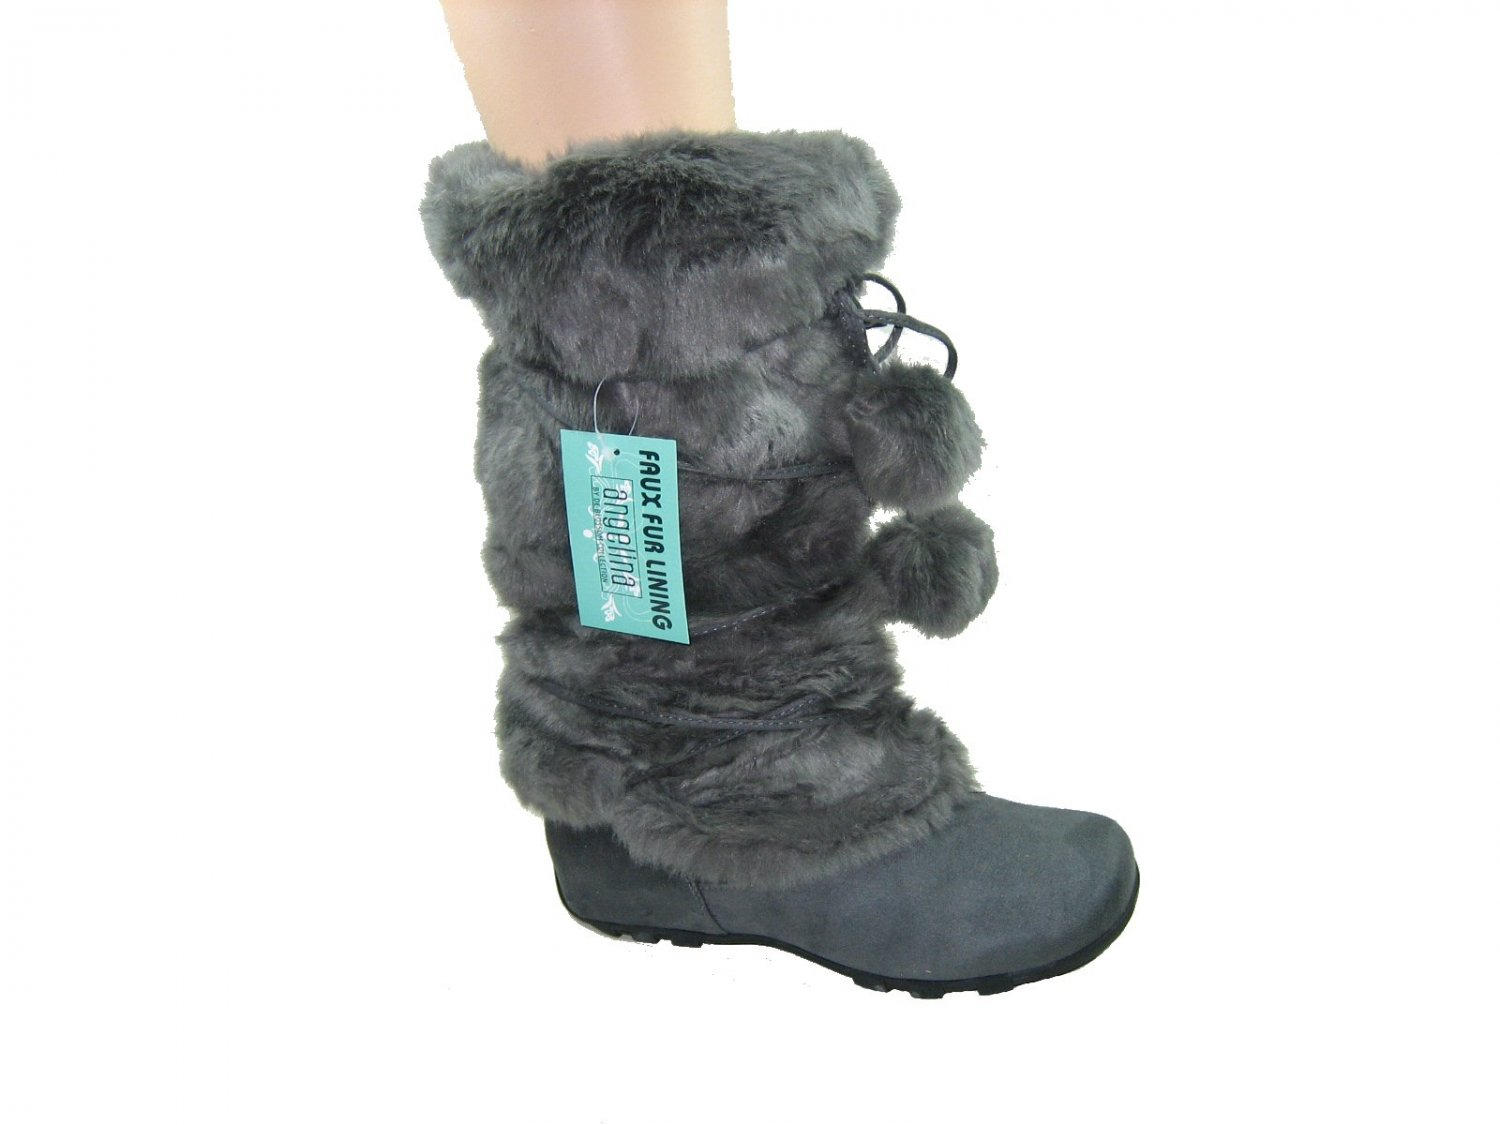 Blossom women's fashion gray faux suede mid-calf faux fur pom pom winter boots size 9